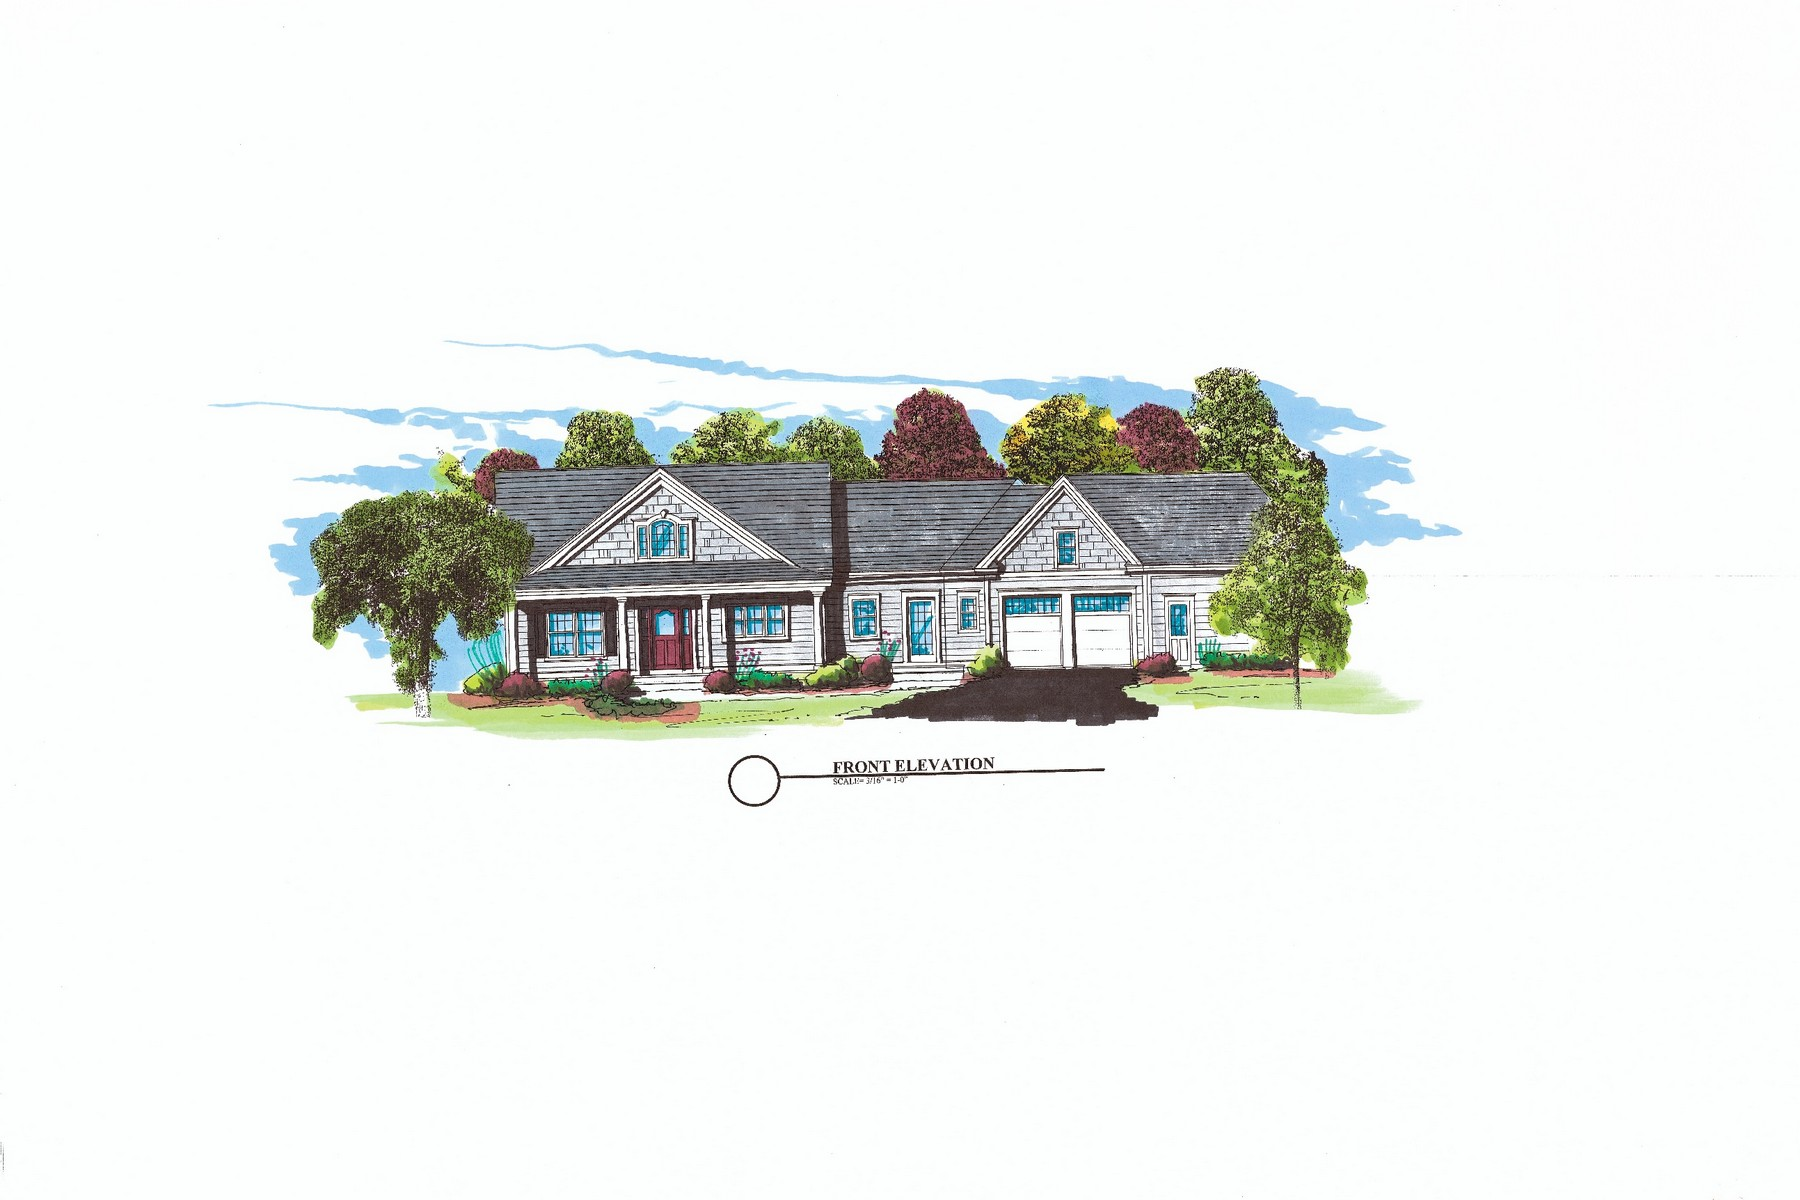 Moradia para Venda às Ranch Style Home To Be Built on 2.13 Acres 16 Hill Road Old Saybrook, Connecticut, 06475 Estados Unidos